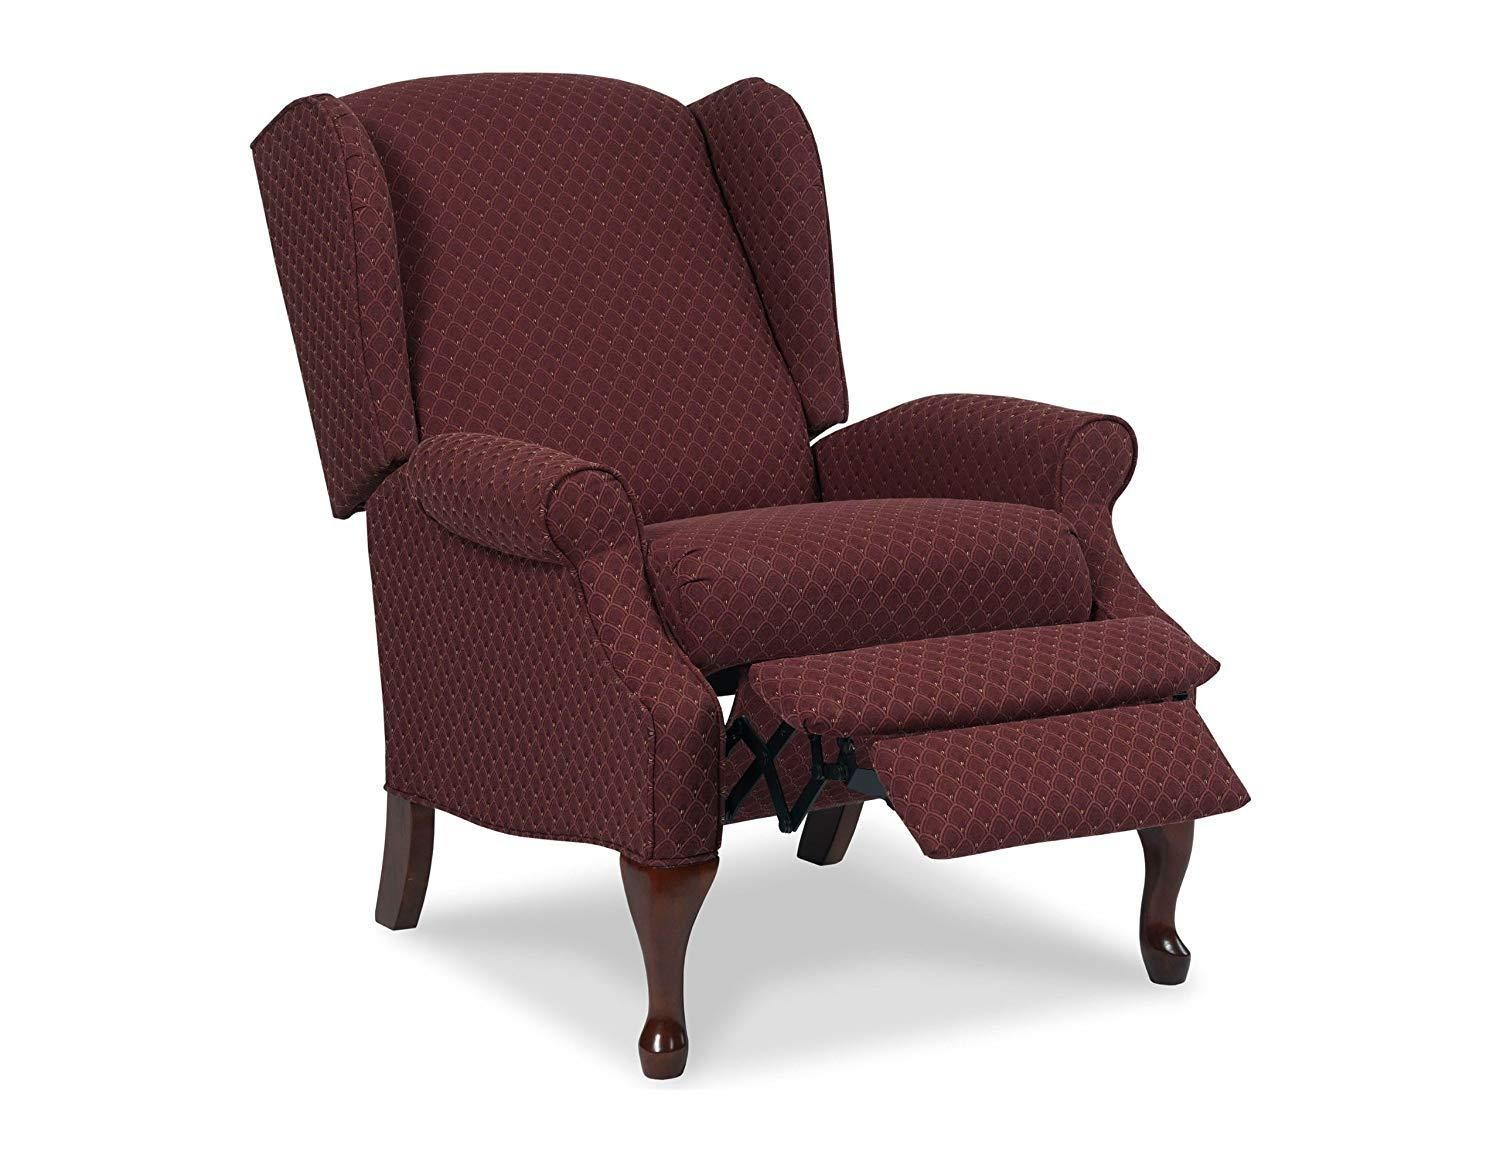 Best Of Wingback Recliners Lane furniture, High leg